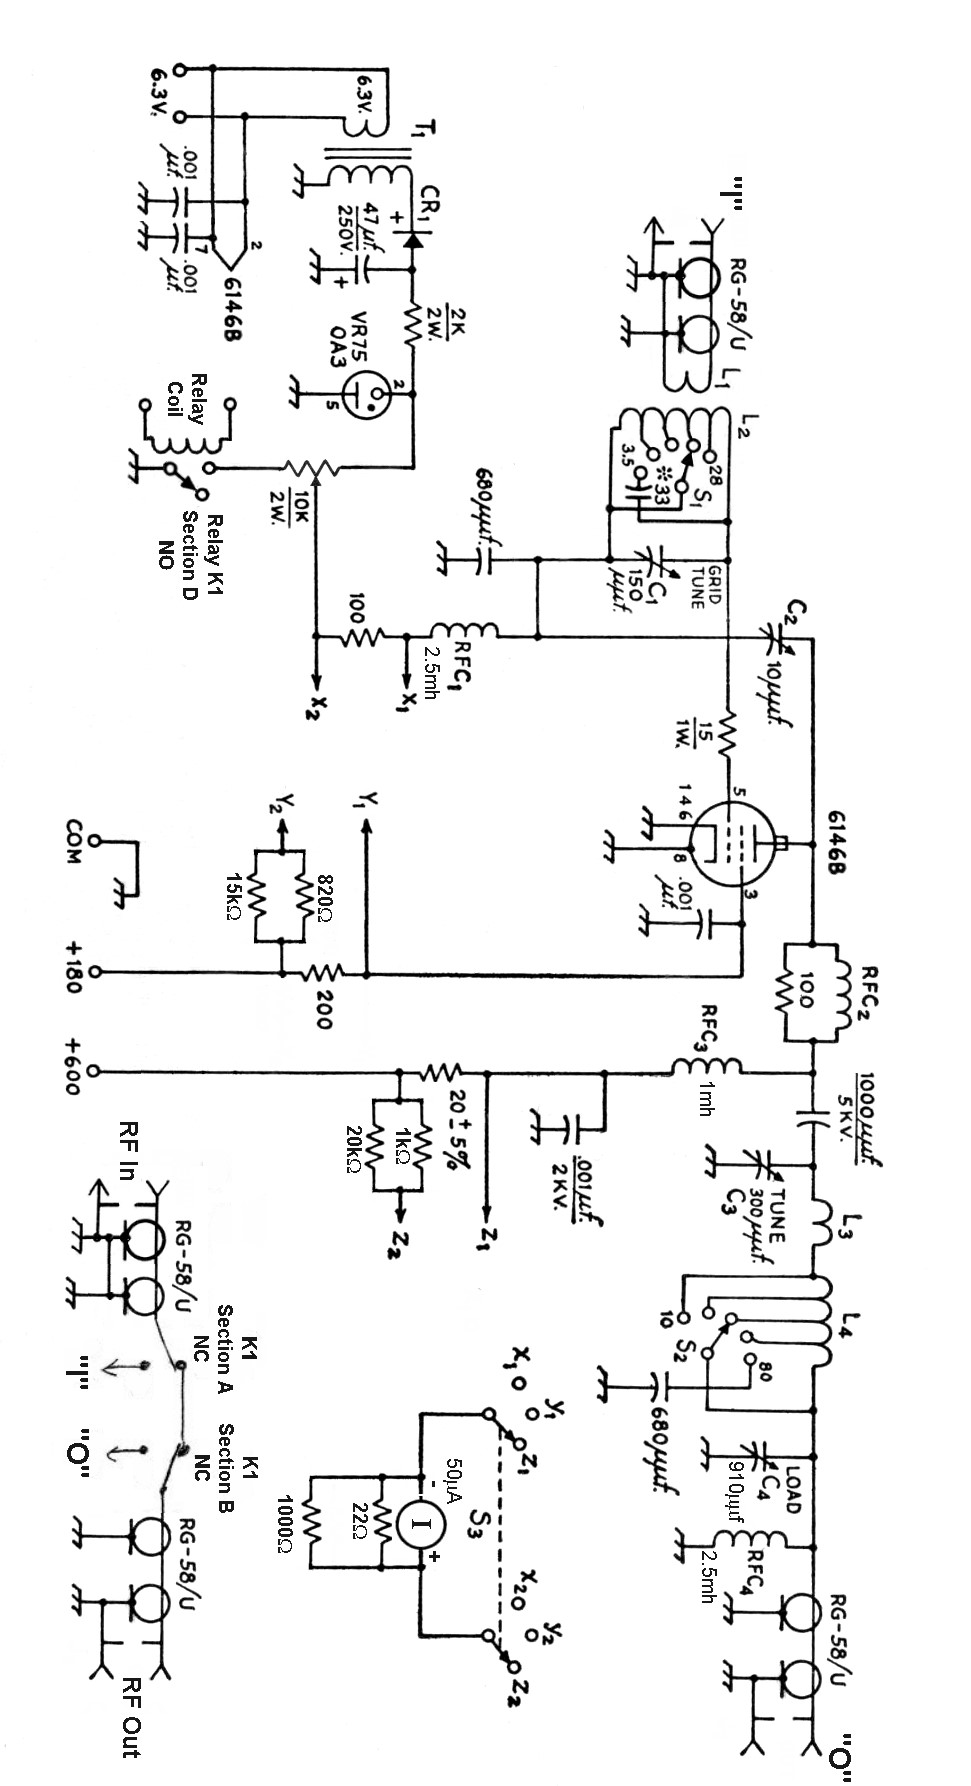 medium resolution of click here for a rotated schematic more suitable for printing